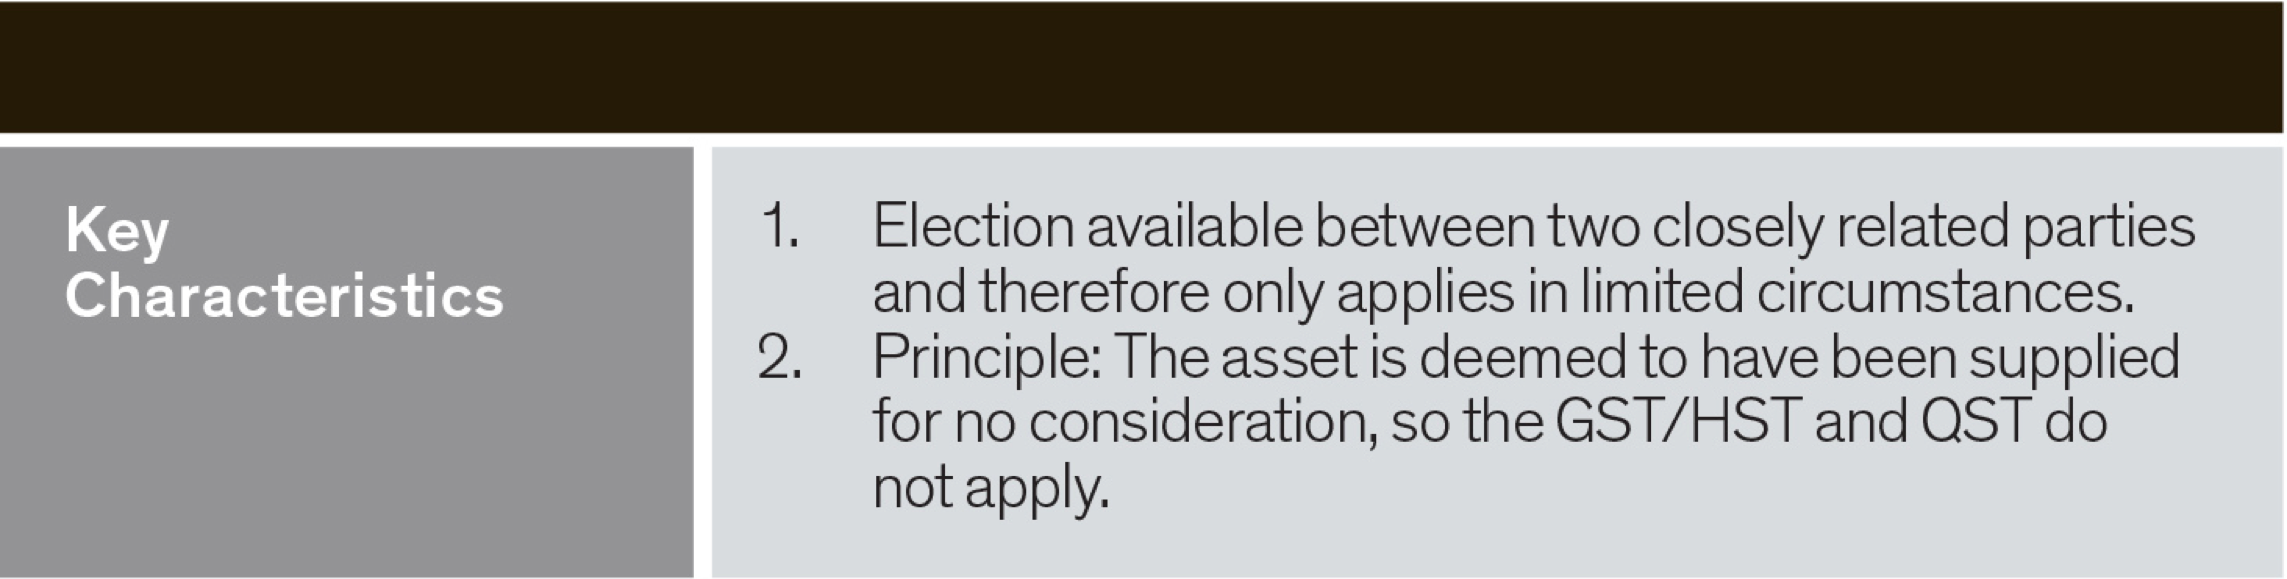 key characteristics - election available between two closely related parties and therefore only applies in limited circumstances. The asset deemed to have been supplied for no consideration so the GST/HST and QST do not apply